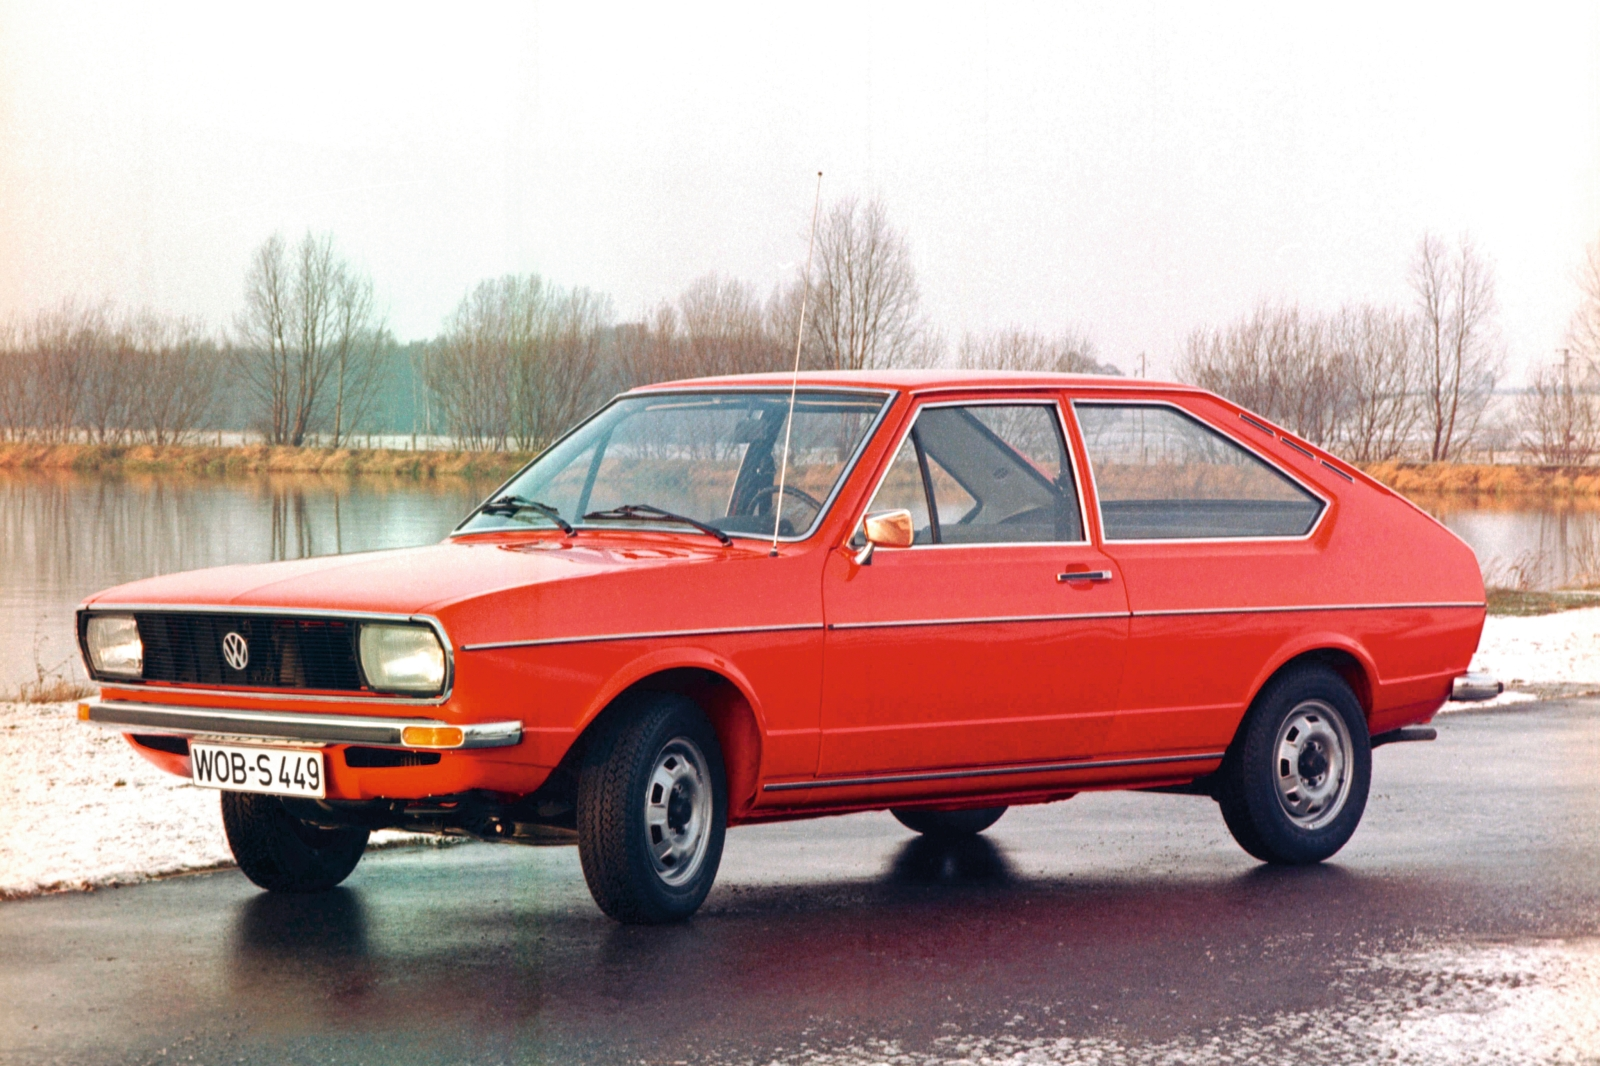 Passat first generation (hatchback saloon, 1973)